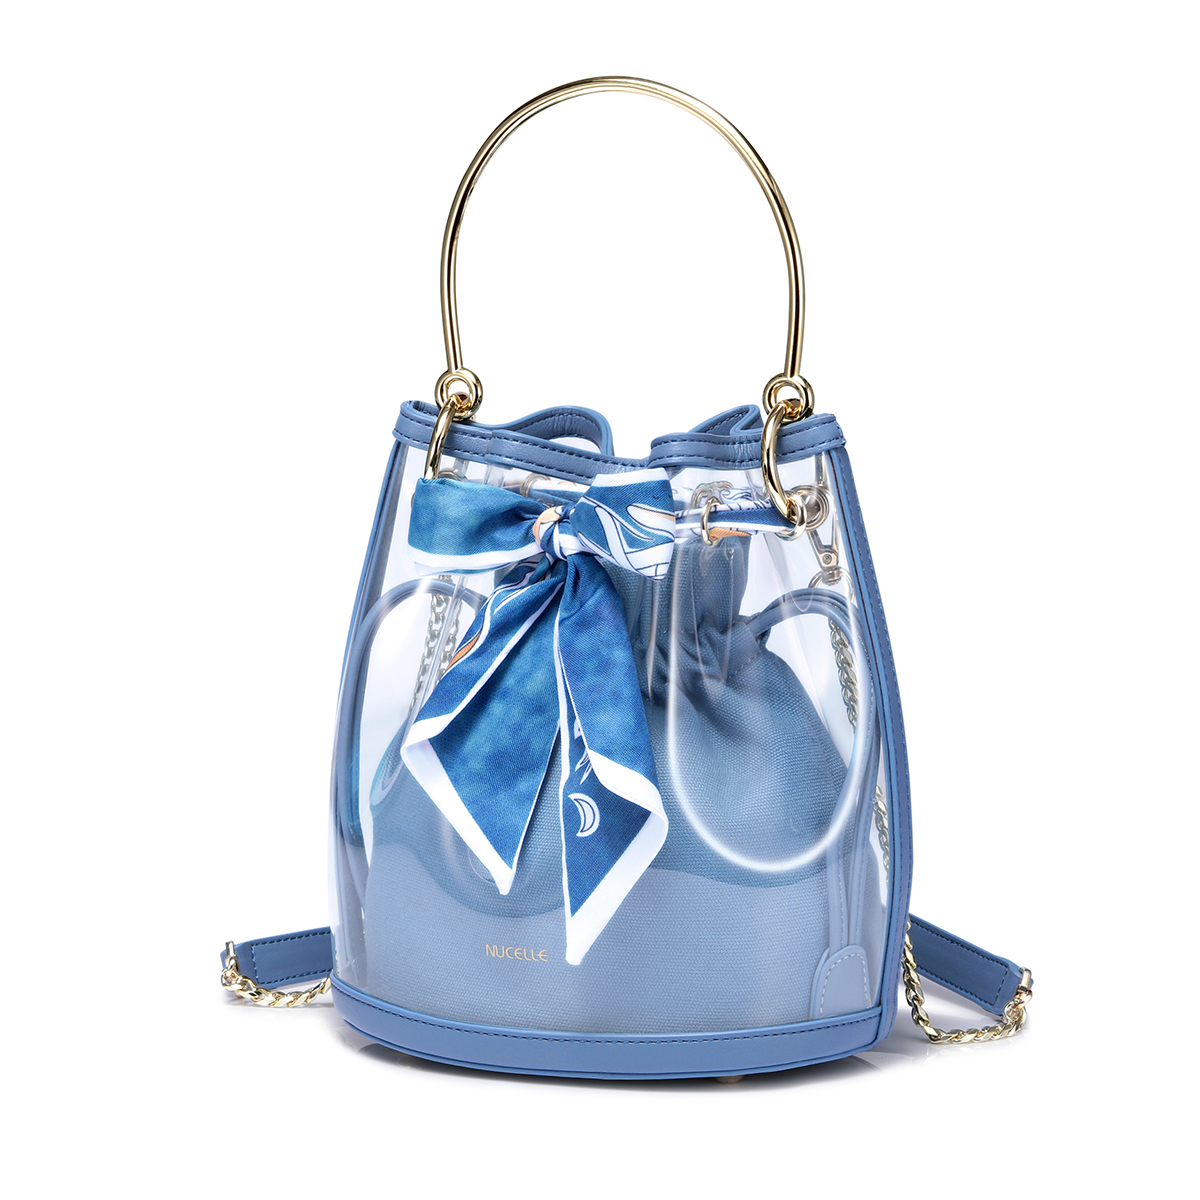 Nucelle 2019 New Stylish Spring Jelly Bag Blue